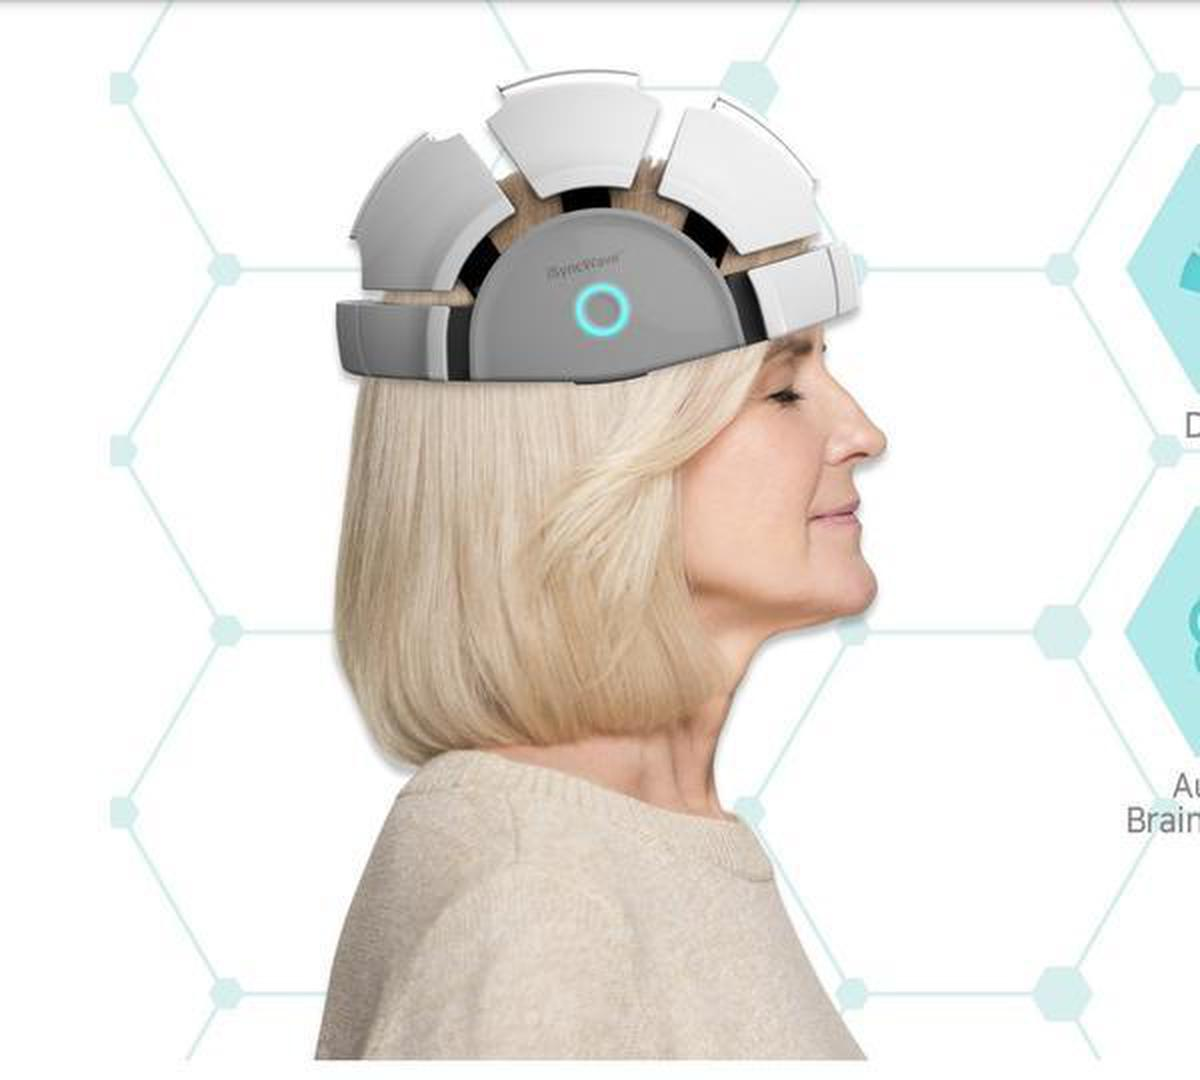 Helmets to predict Alzheimer's, a stress-canceller, an app to track seizures : Health tech at CES 2021